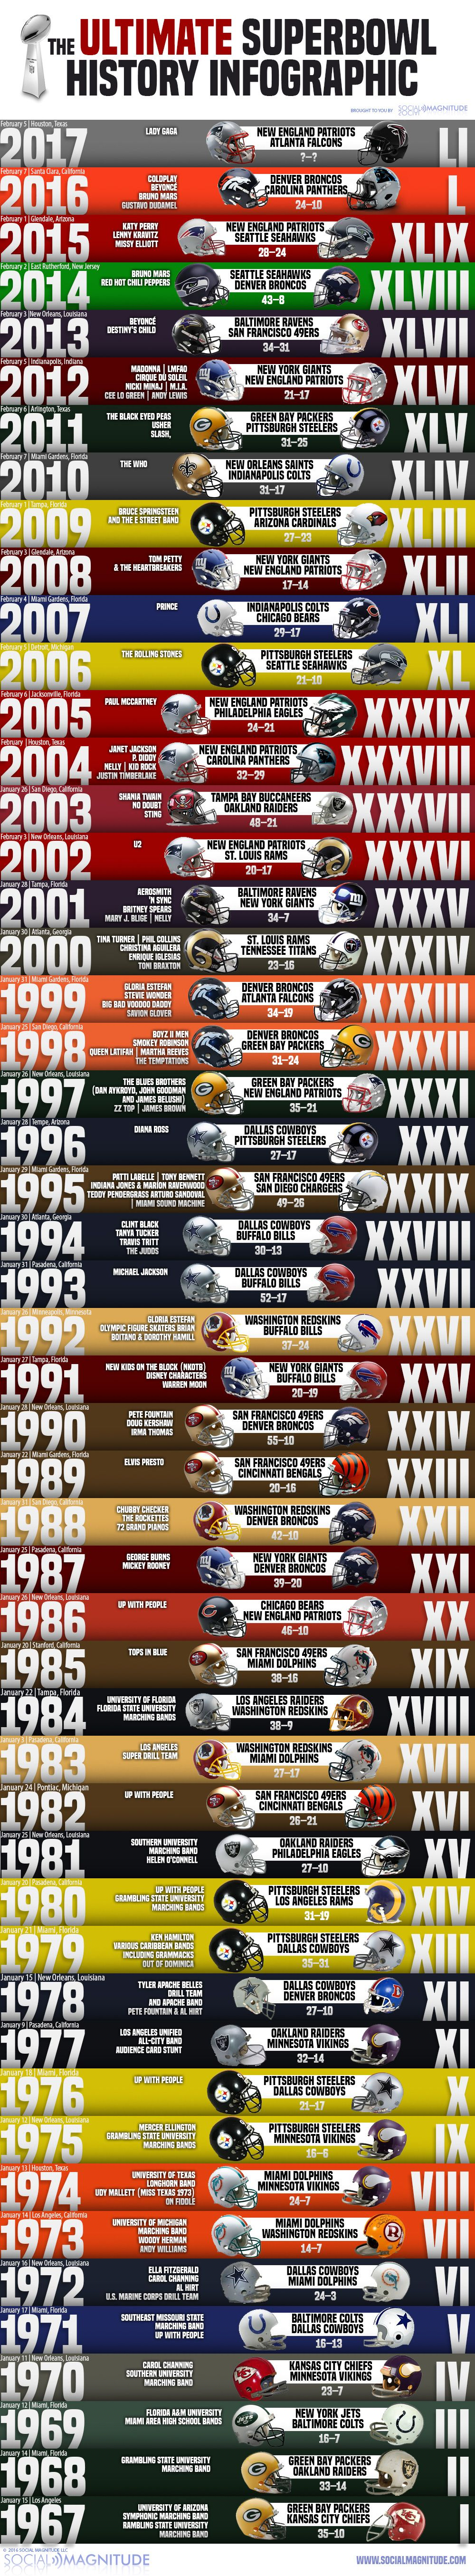 Ultimage Superbowl History Graphic